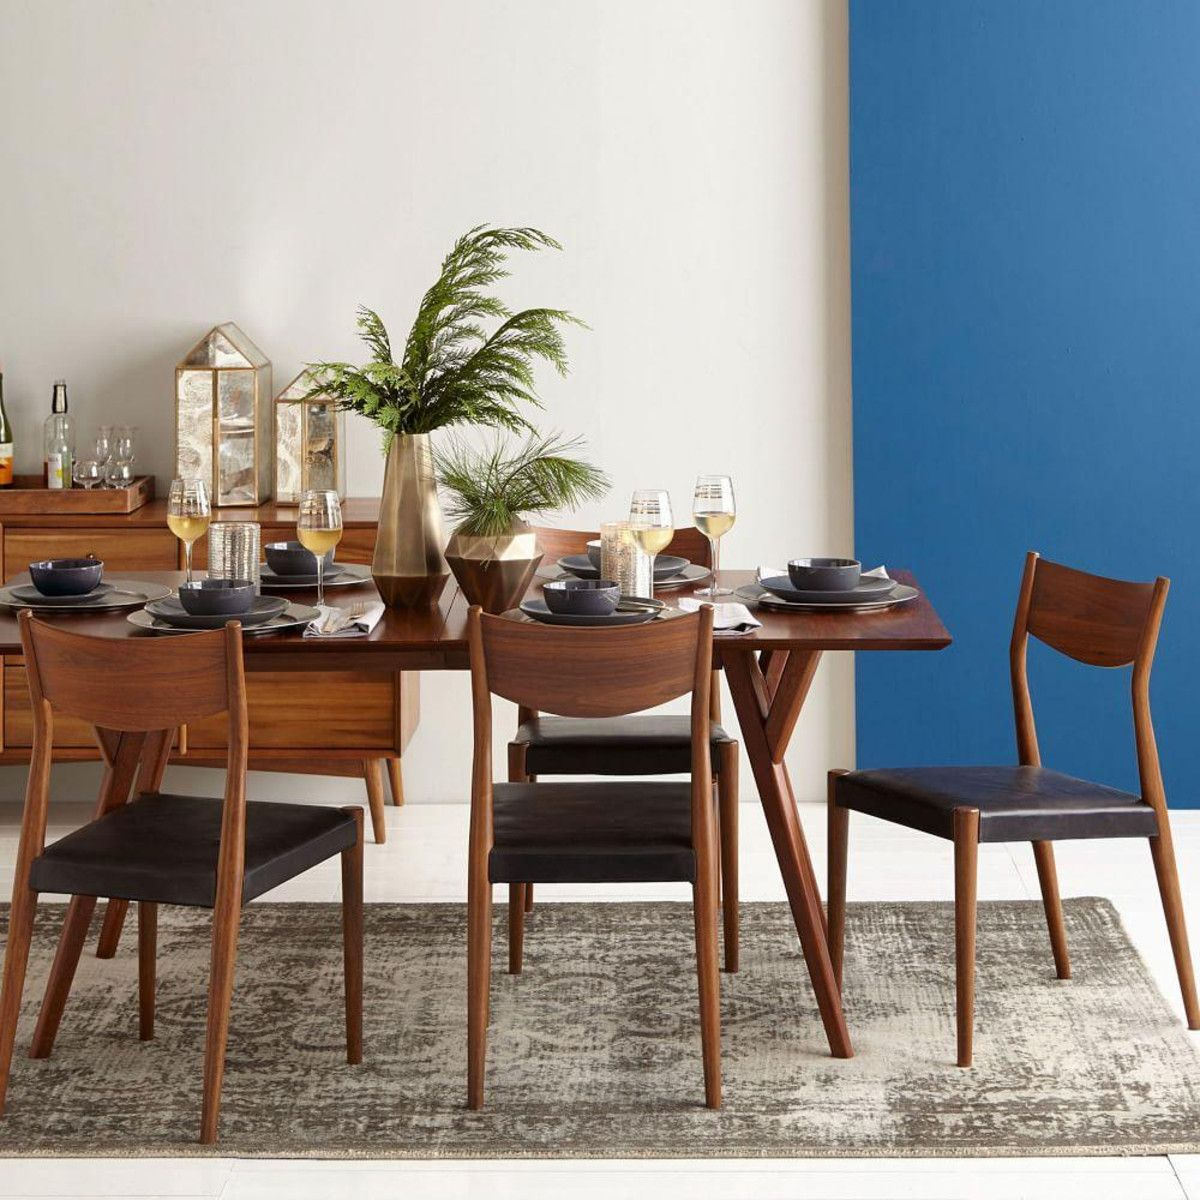 West elm dining rooms yahoo search results yahoo image search results